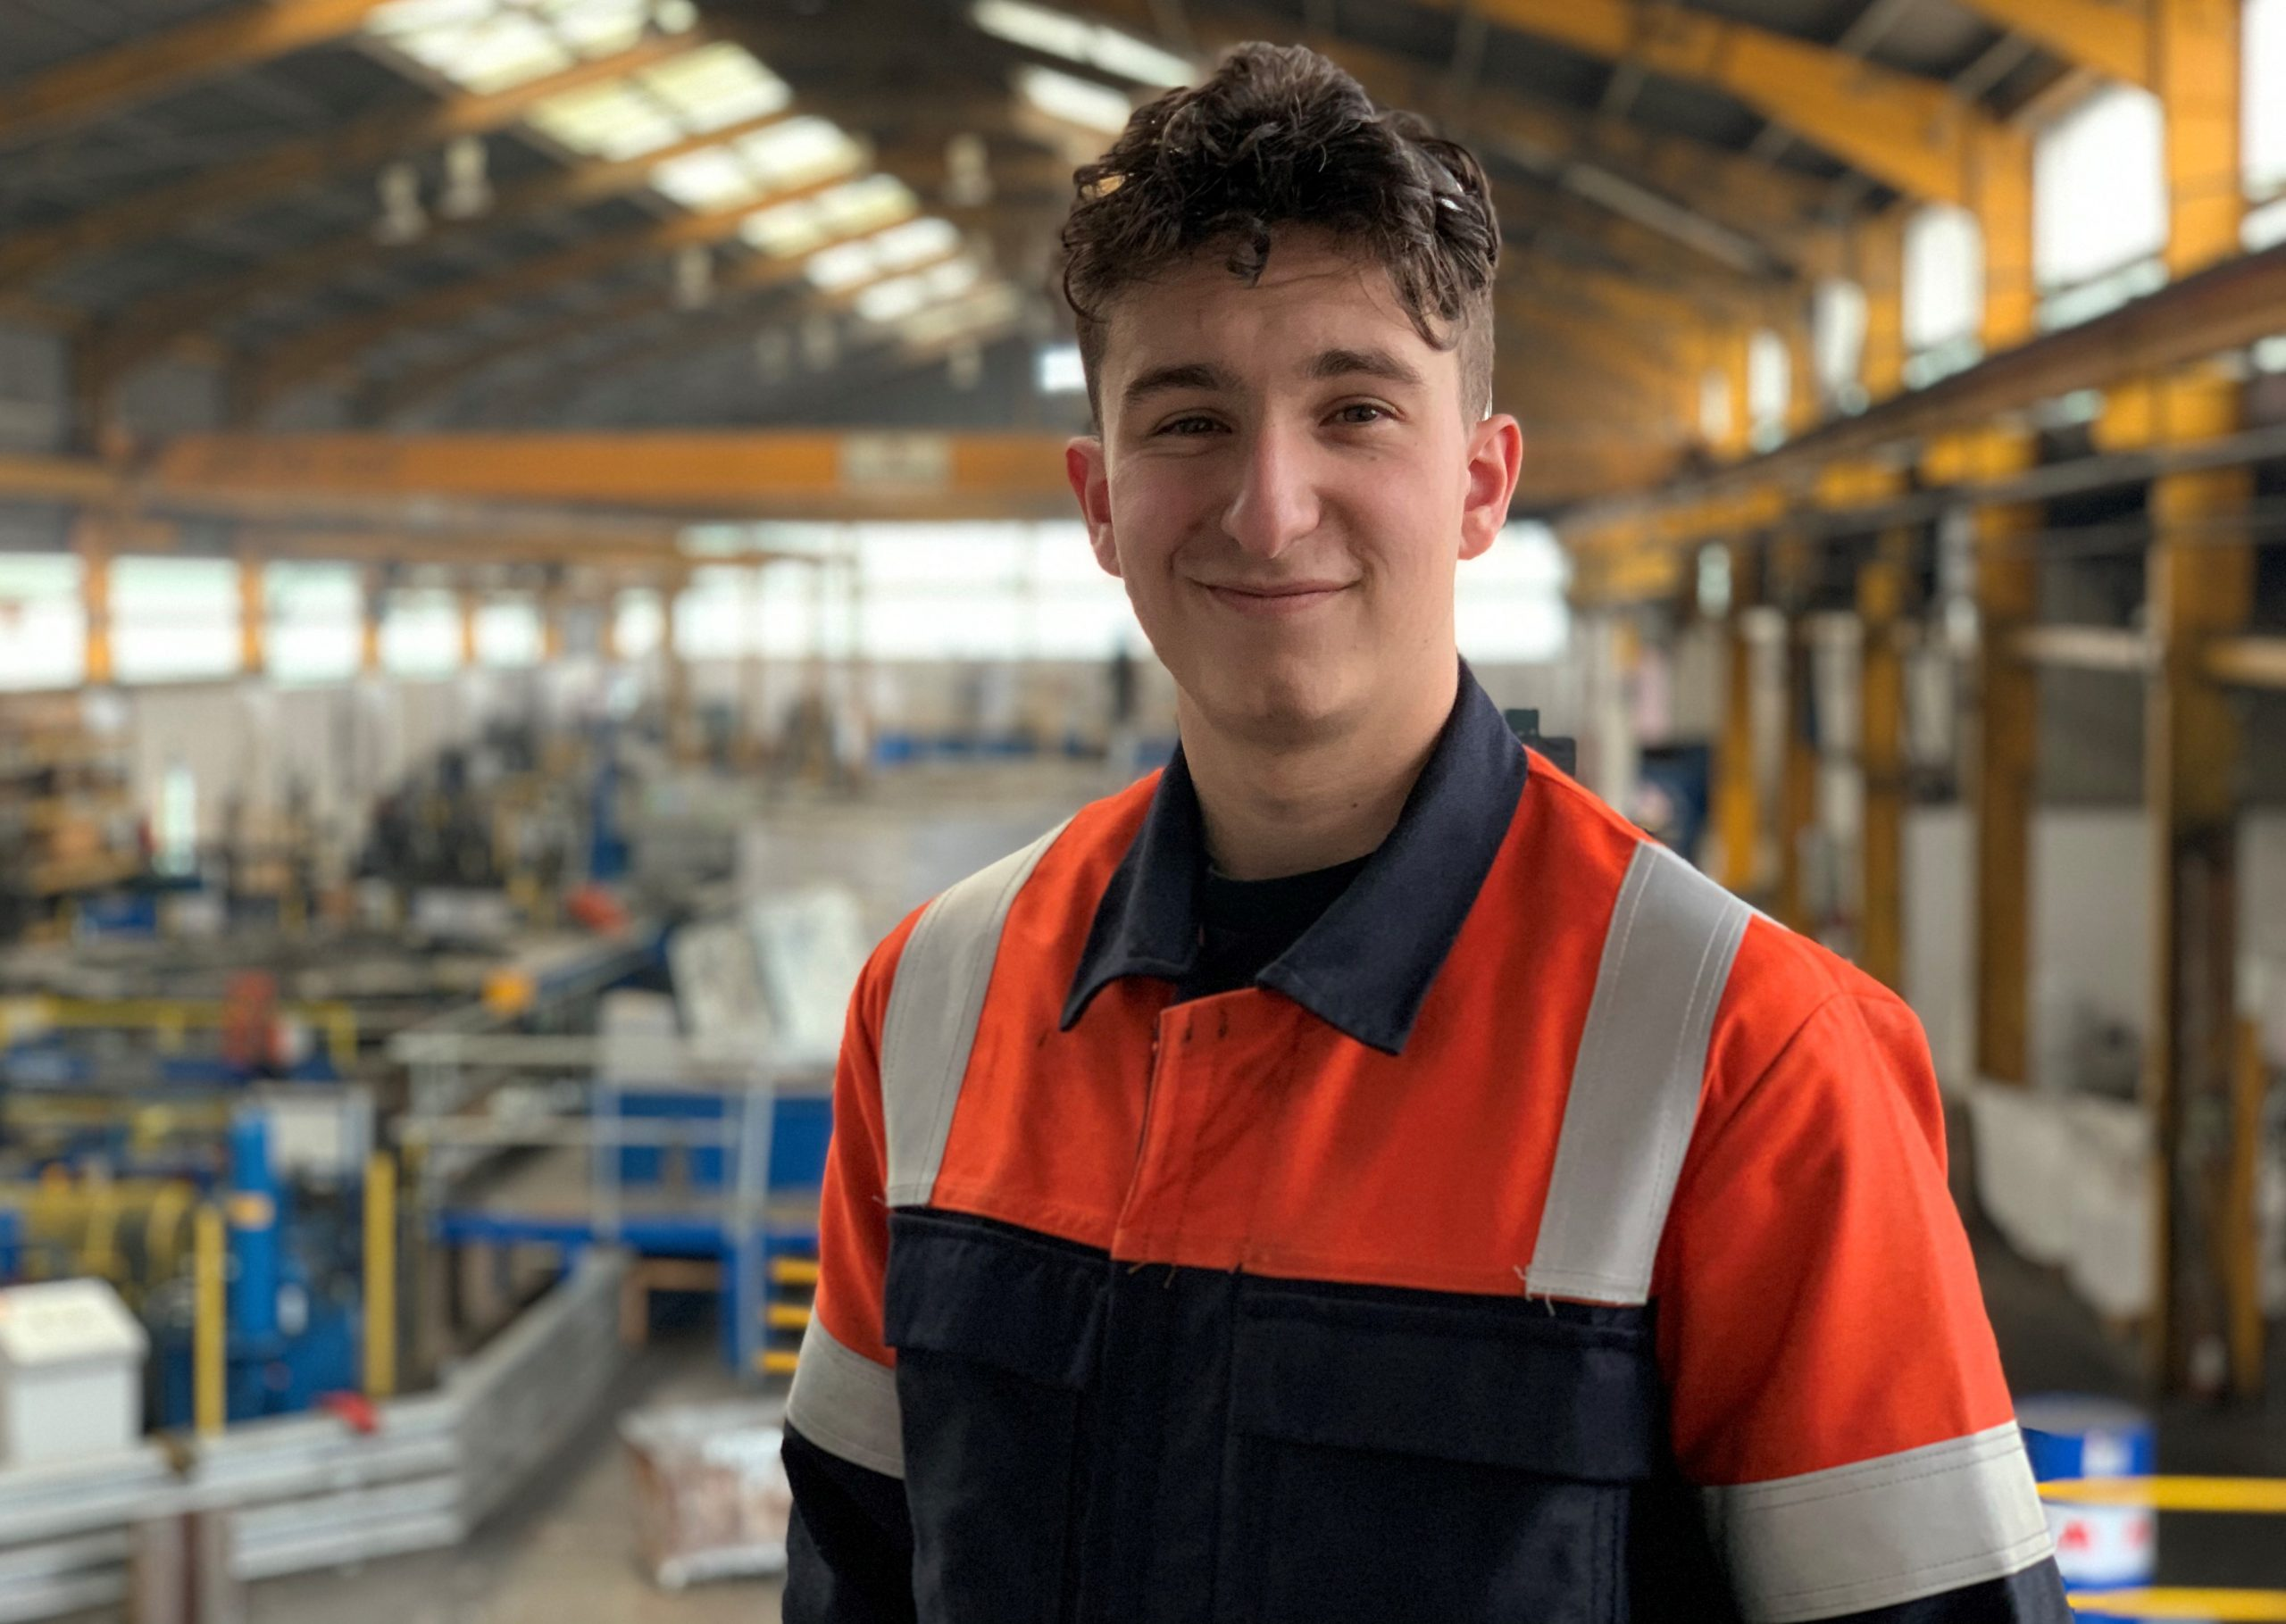 Matt Jones, REAZN UK Quality Engineer Apprentice